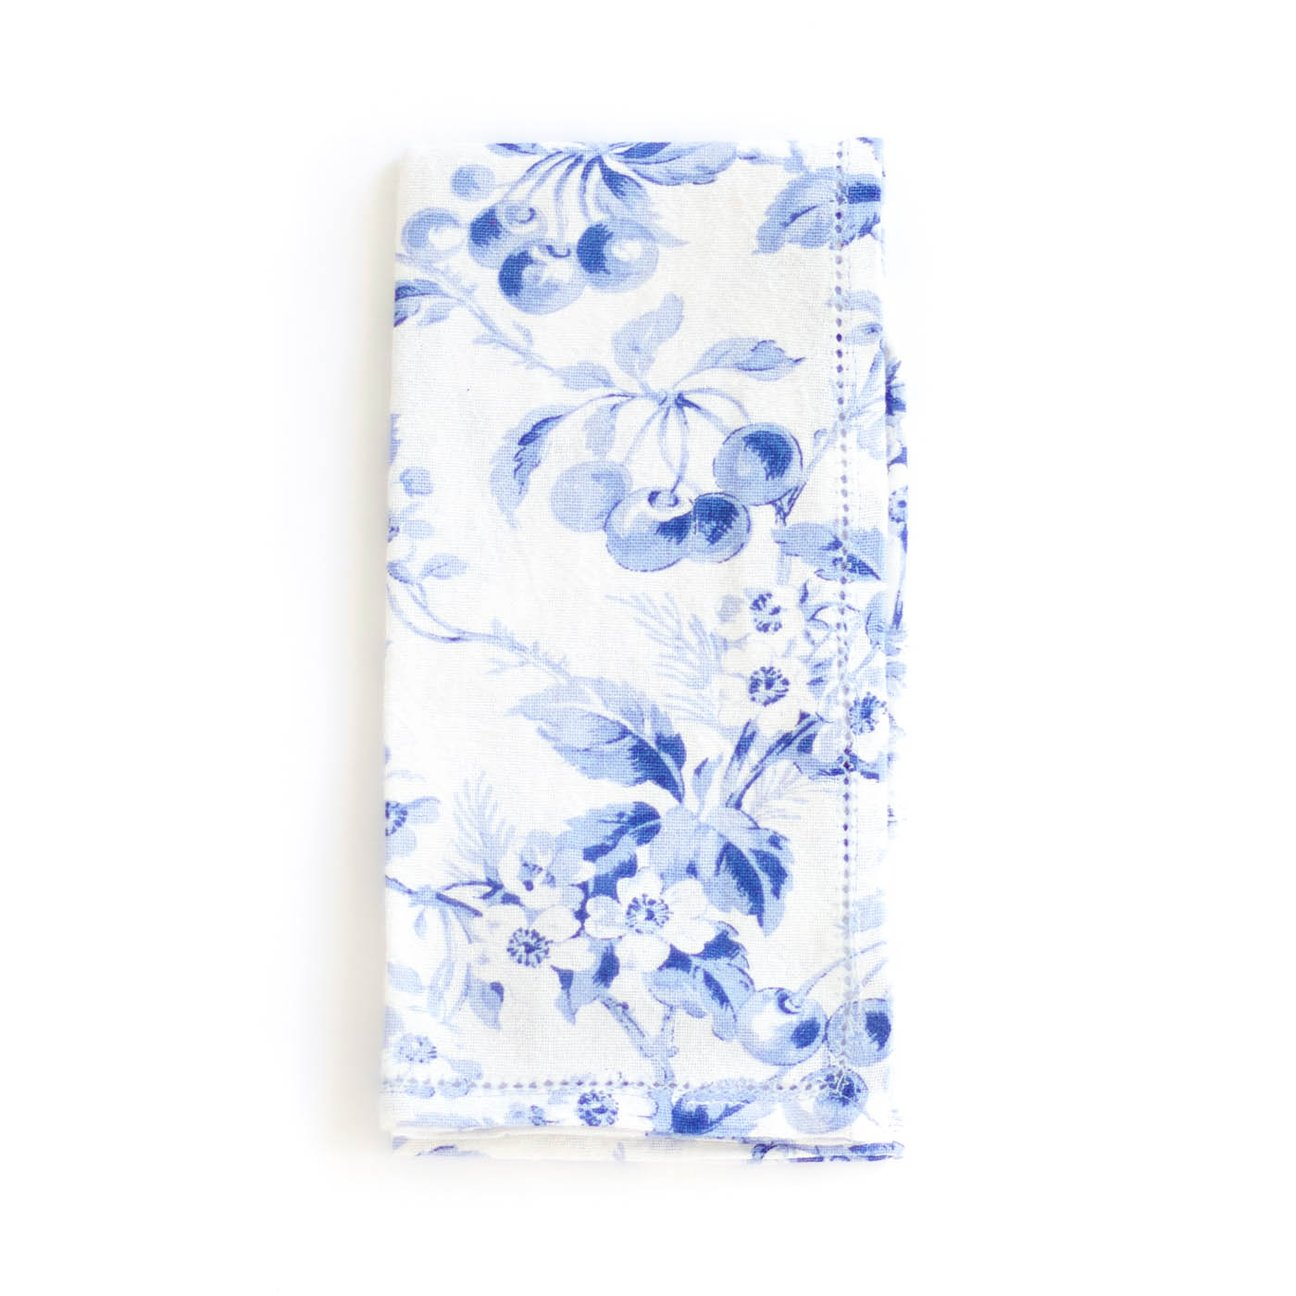 Summer Party Hostess Gifts: The Avenue Cheery Blossom Napkins